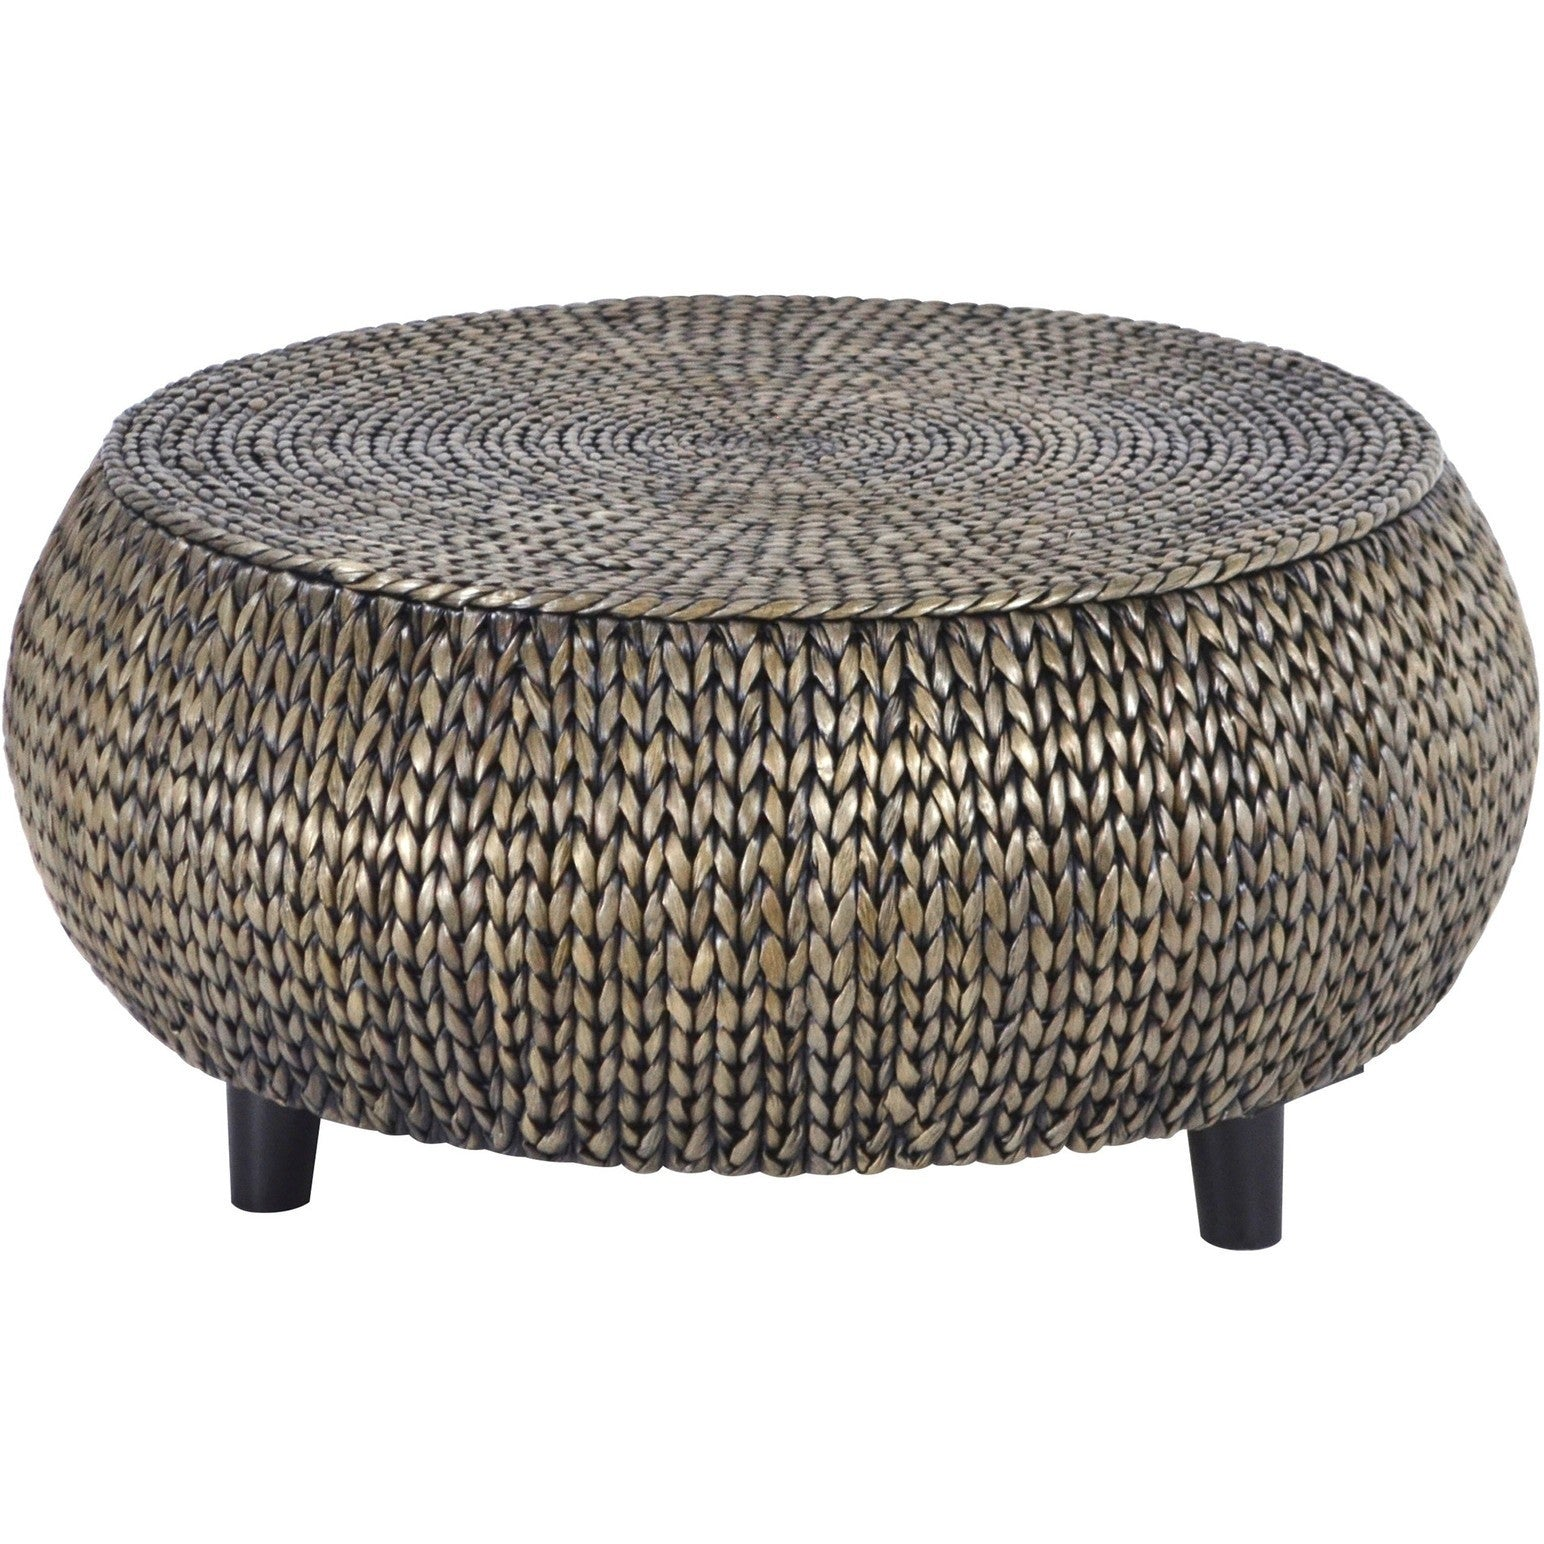 Tremendous Bali Breeze Coffee Table By Gallerie Decor Andrewgaddart Wooden Chair Designs For Living Room Andrewgaddartcom